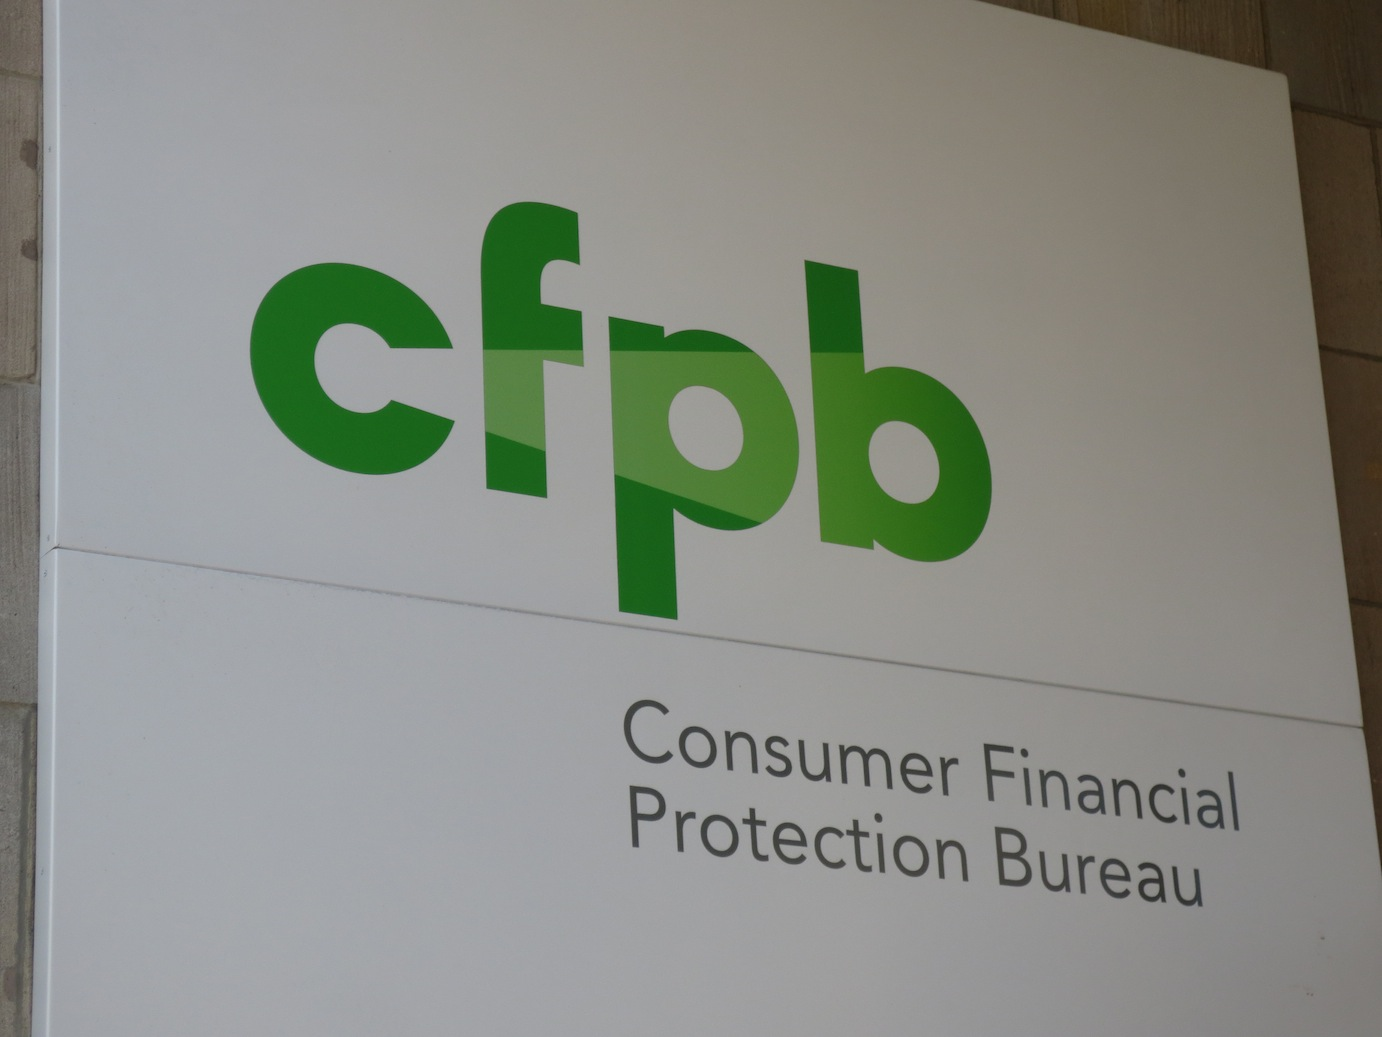 CFPB logo outside the building